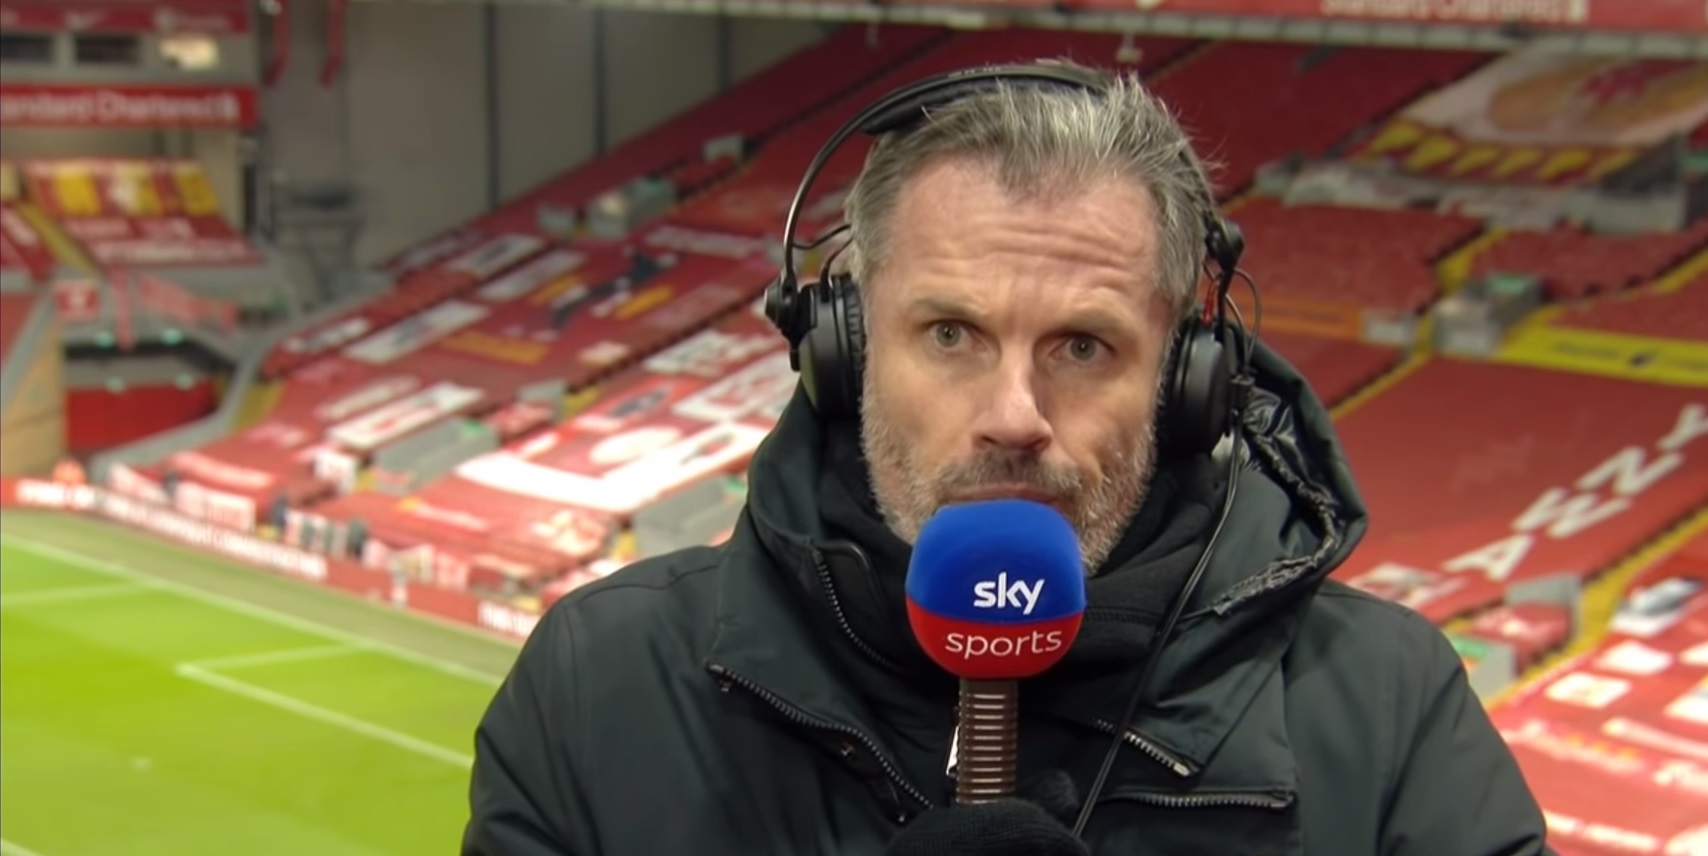 (Video) Carragher 'could not believe' when Klopp subbed Salah off in Chelsea clash